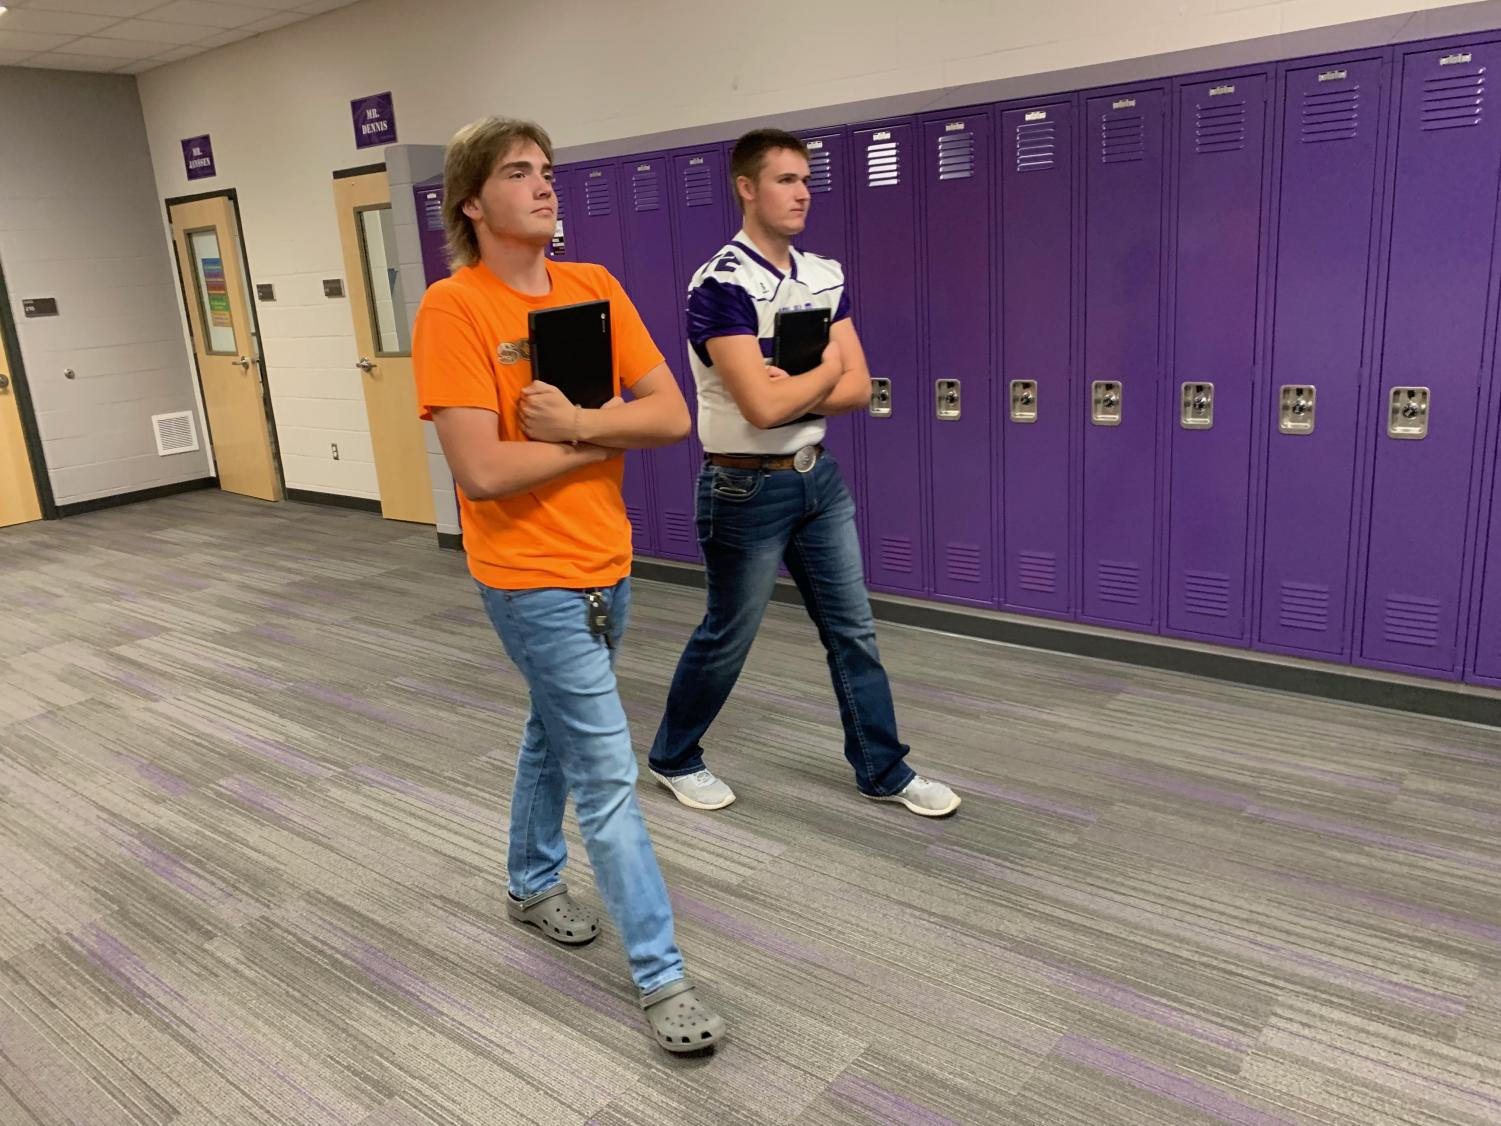 Two of New Ulm's high school students take a stroll down the hallway with the new Chromebooks in hand.